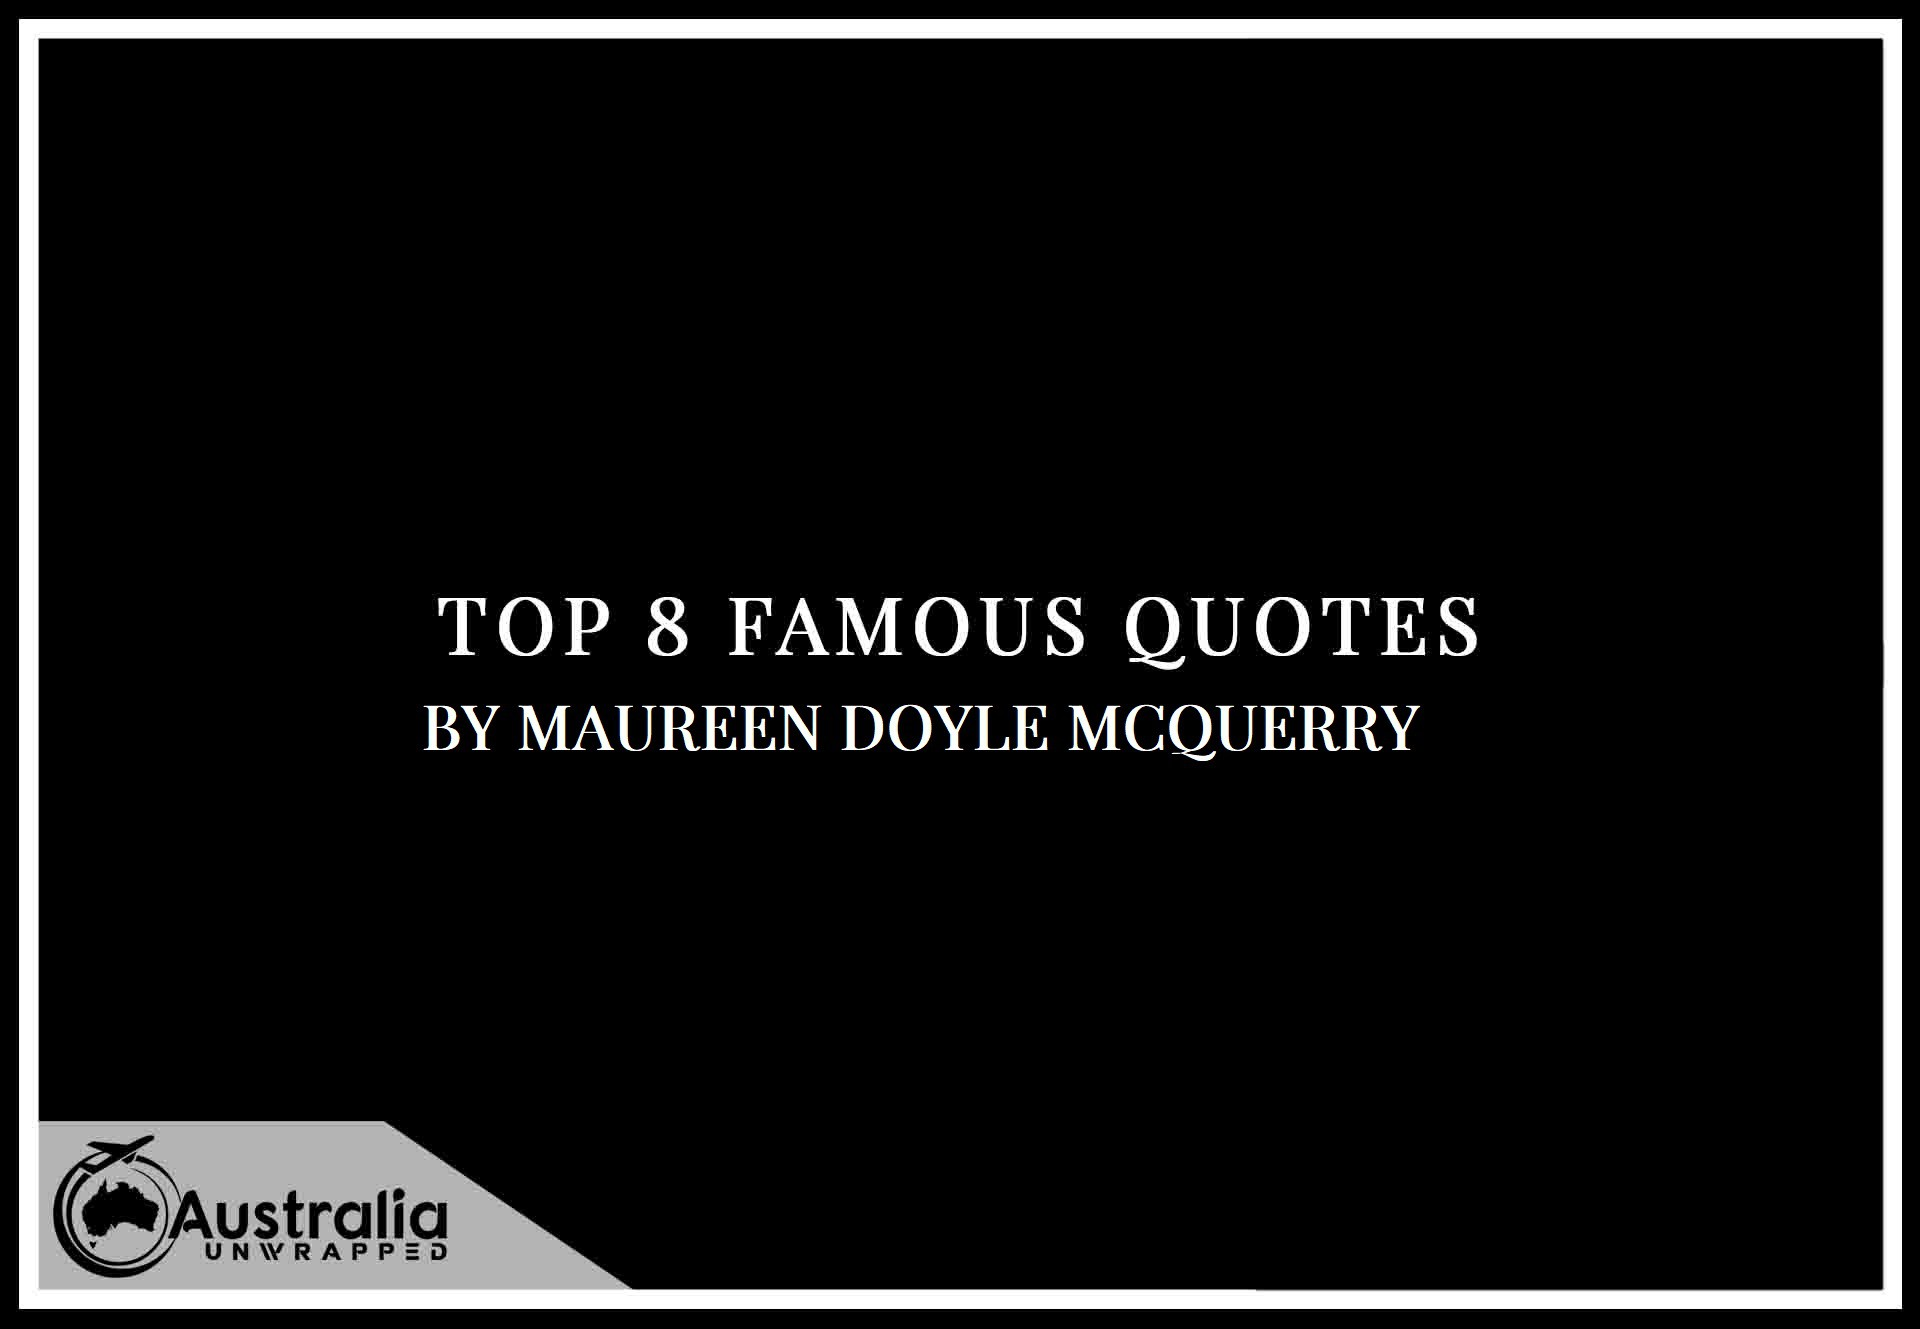 Top 8 Famous Quotes by Author Maureen Doyle McQuerry